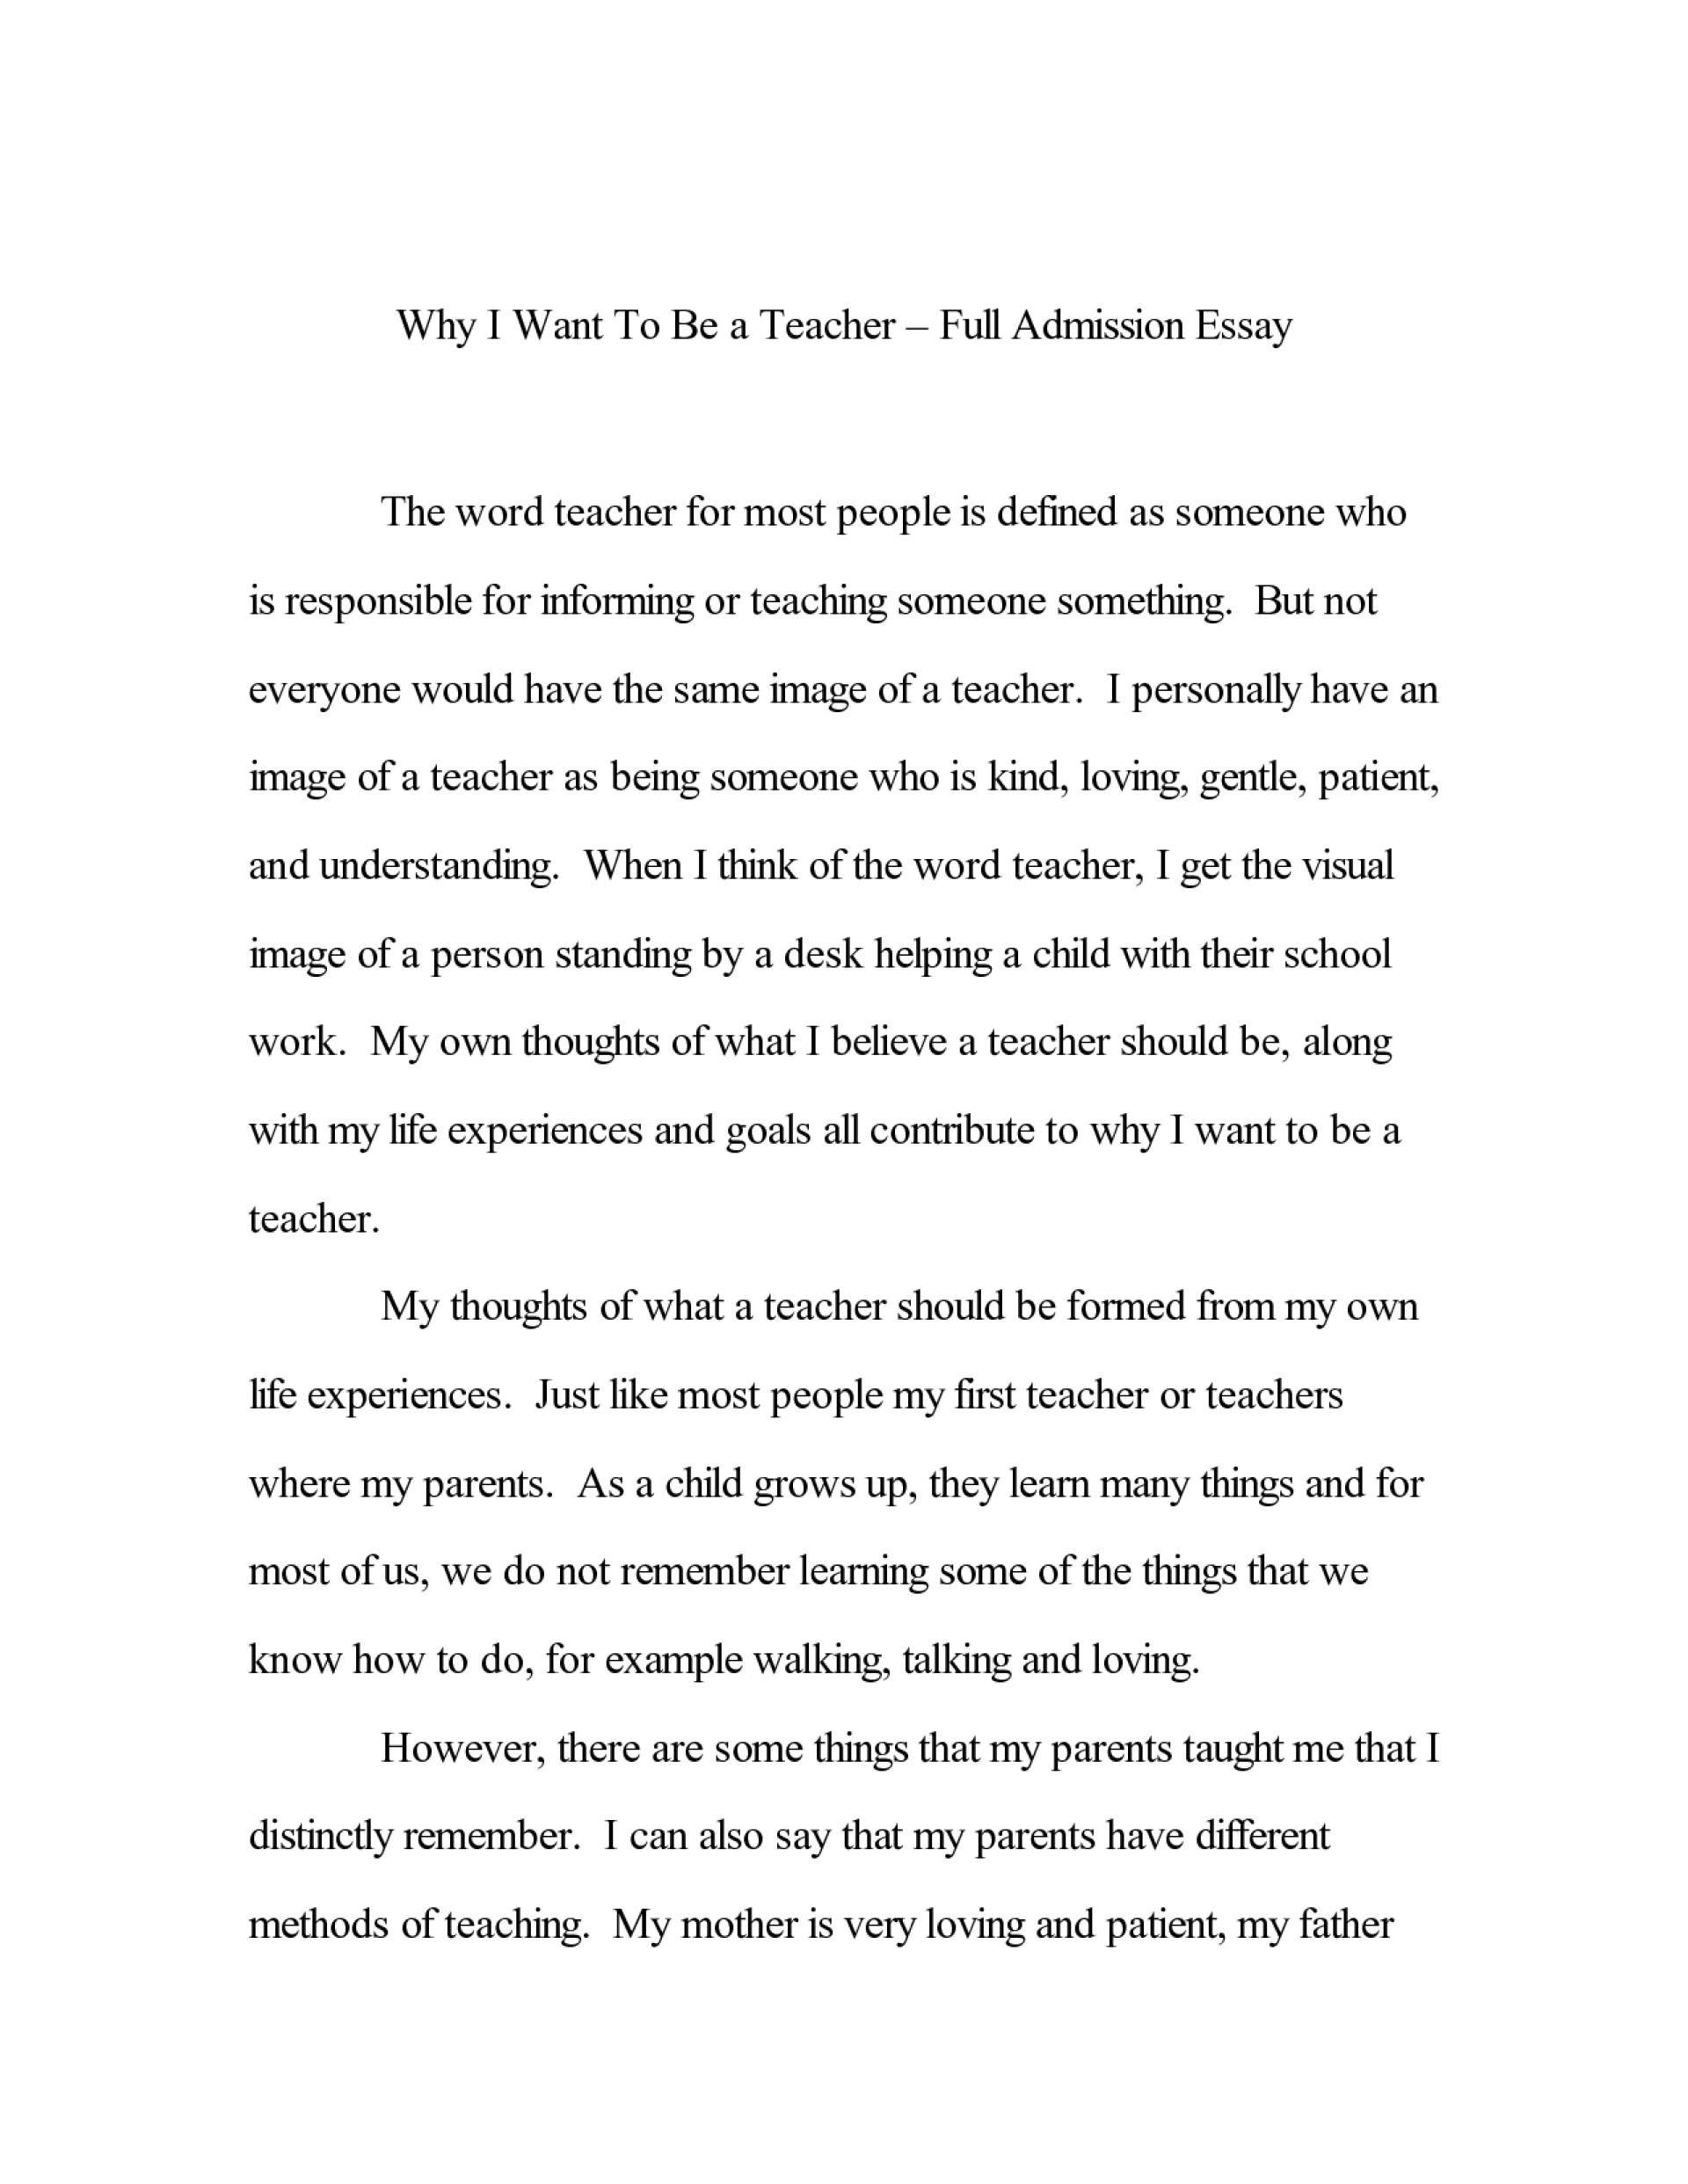 003 Sample College Application Essays Essay Remarkable About Diversity Pdf Leadership 1920